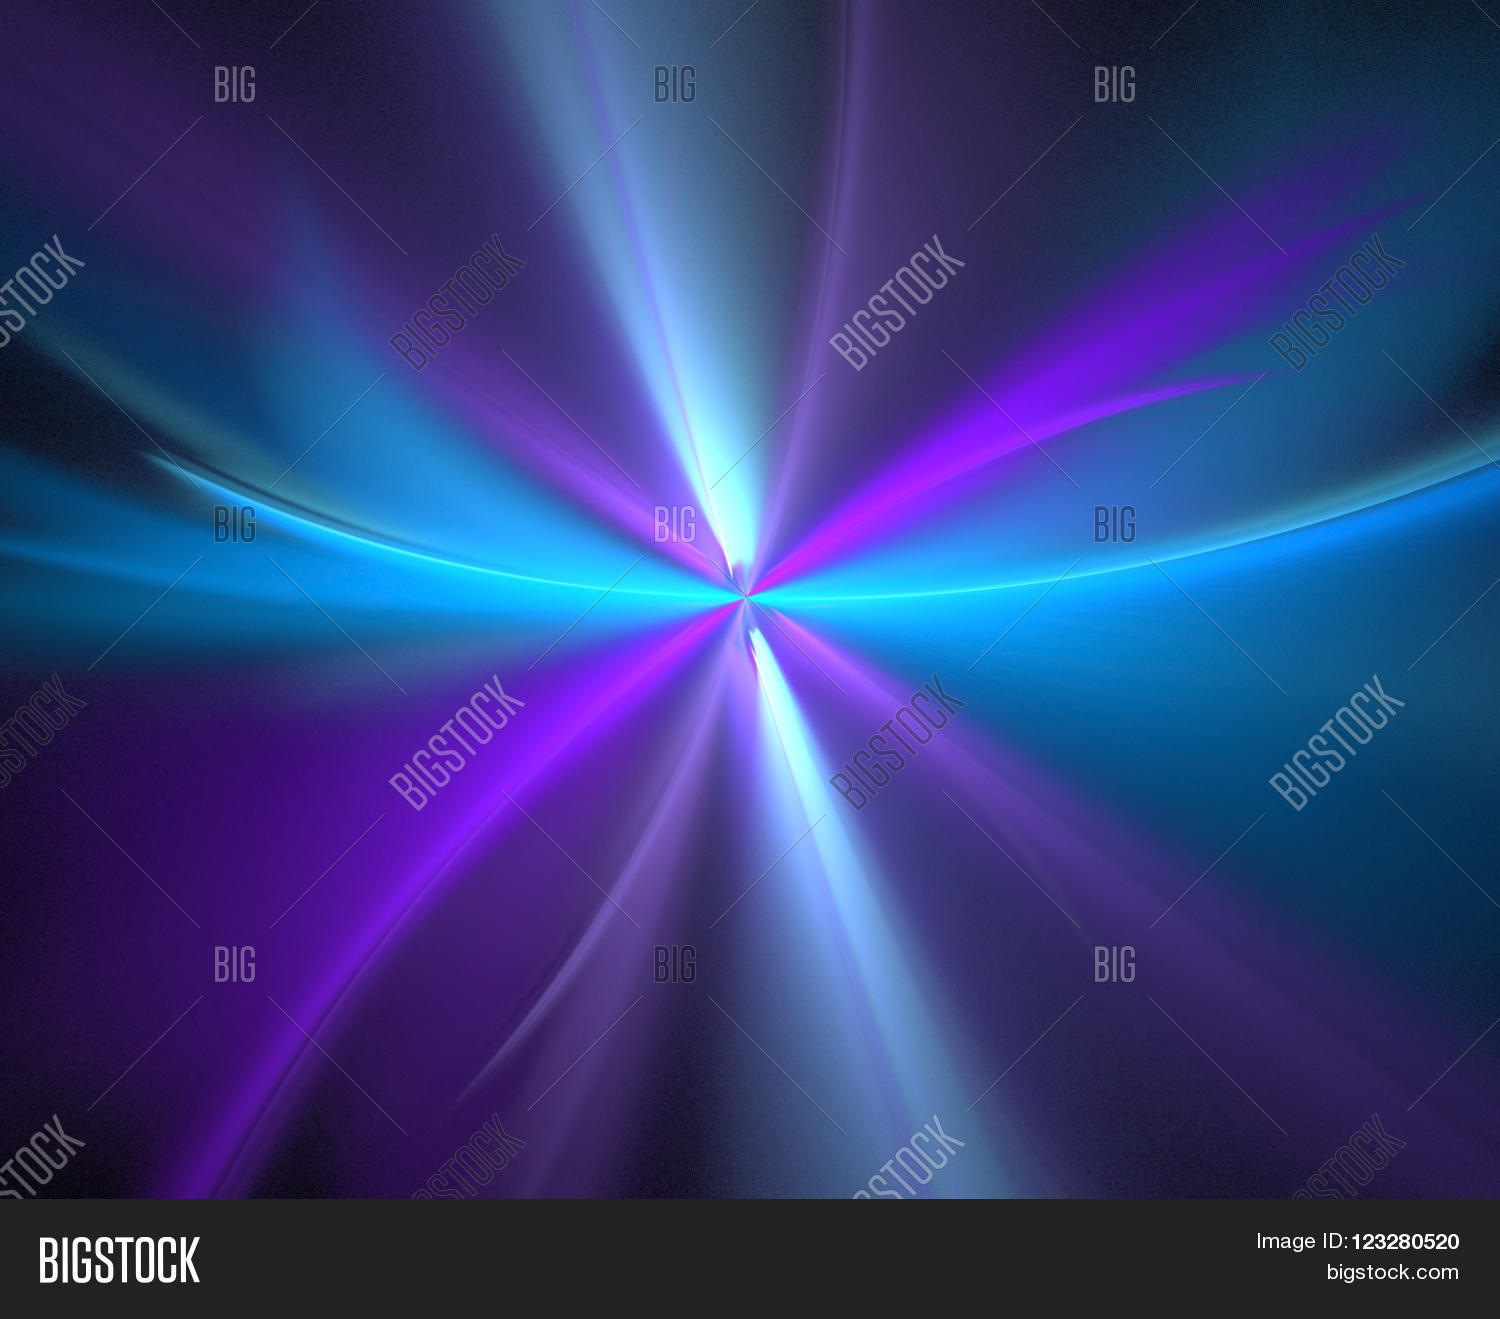 Abstract Black Background Purple, Image & Photo